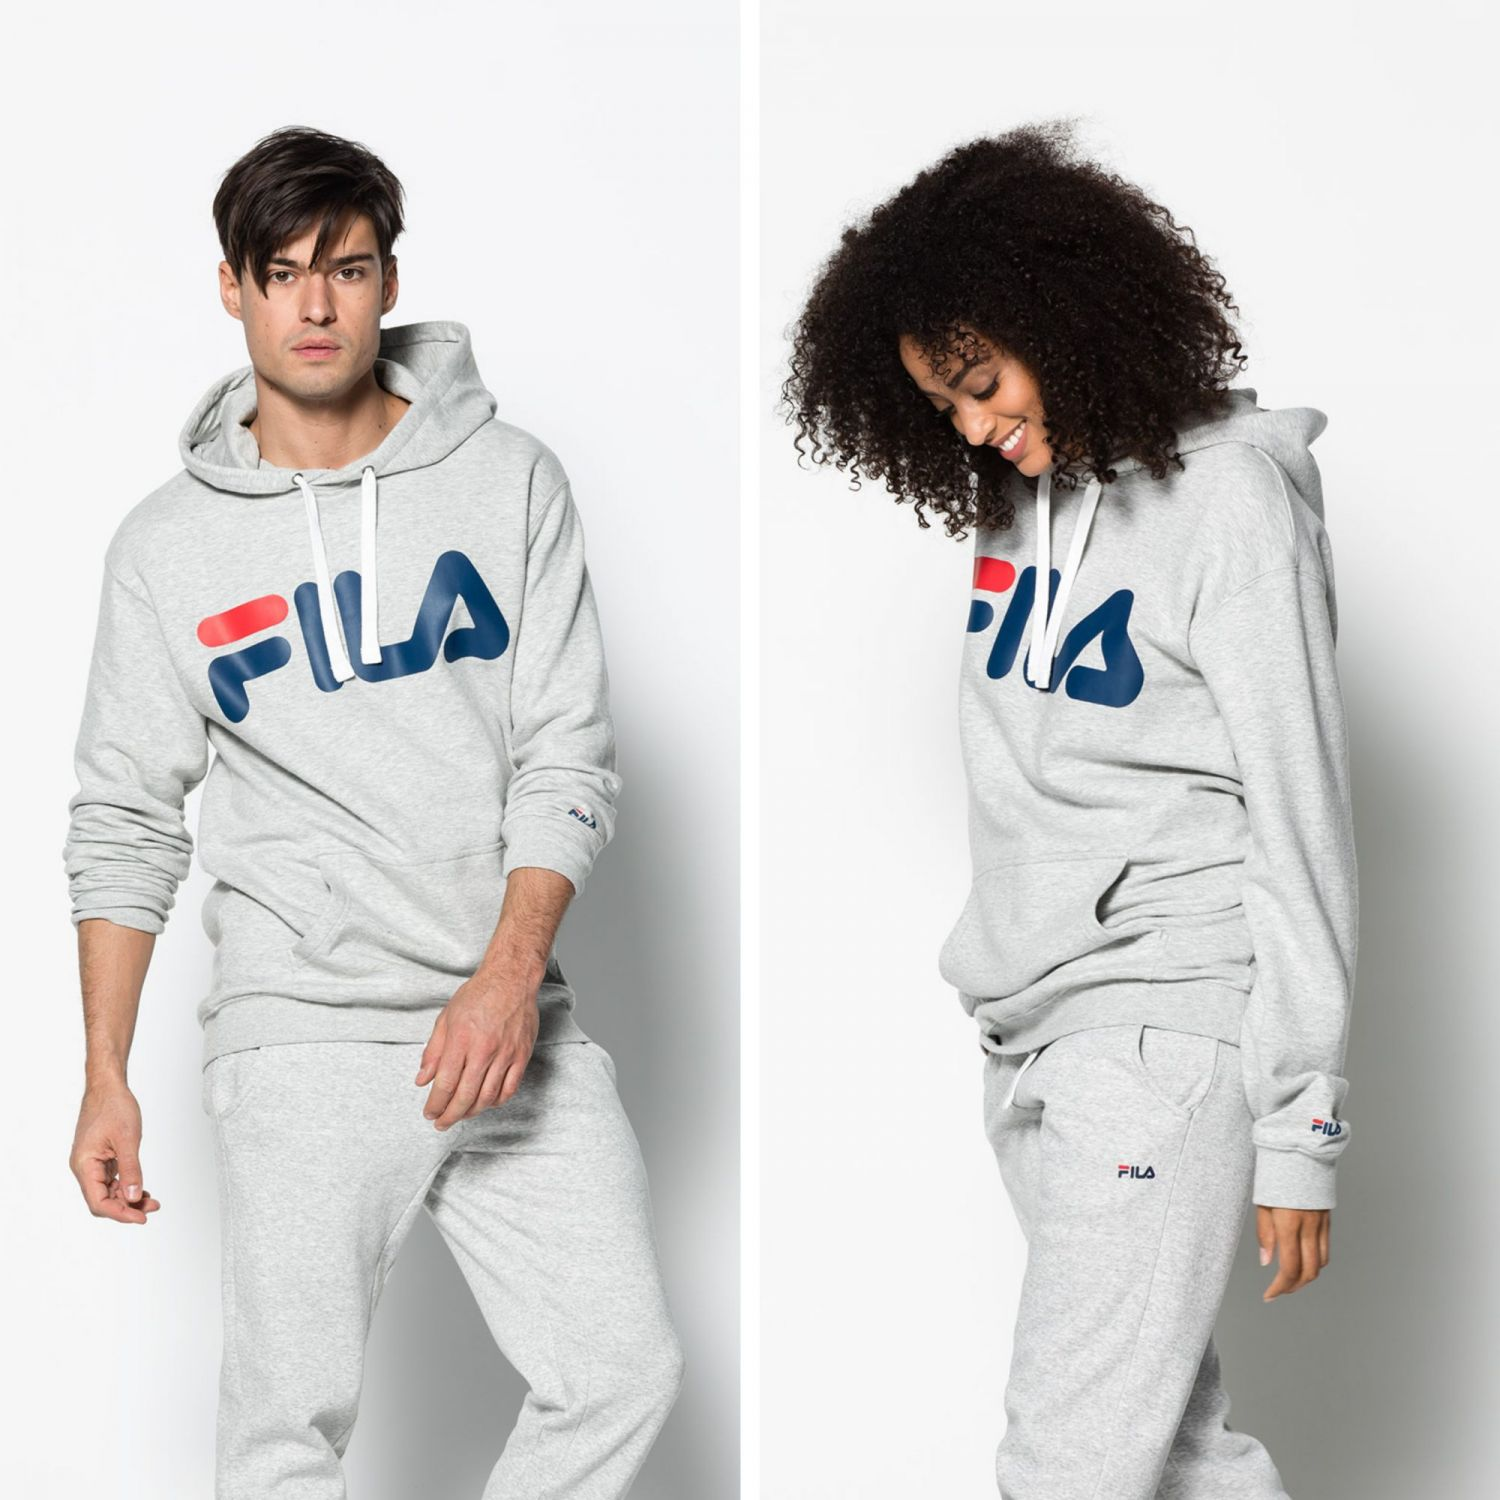 fila classic logo hood 00014201477833 off white fila germany. Black Bedroom Furniture Sets. Home Design Ideas